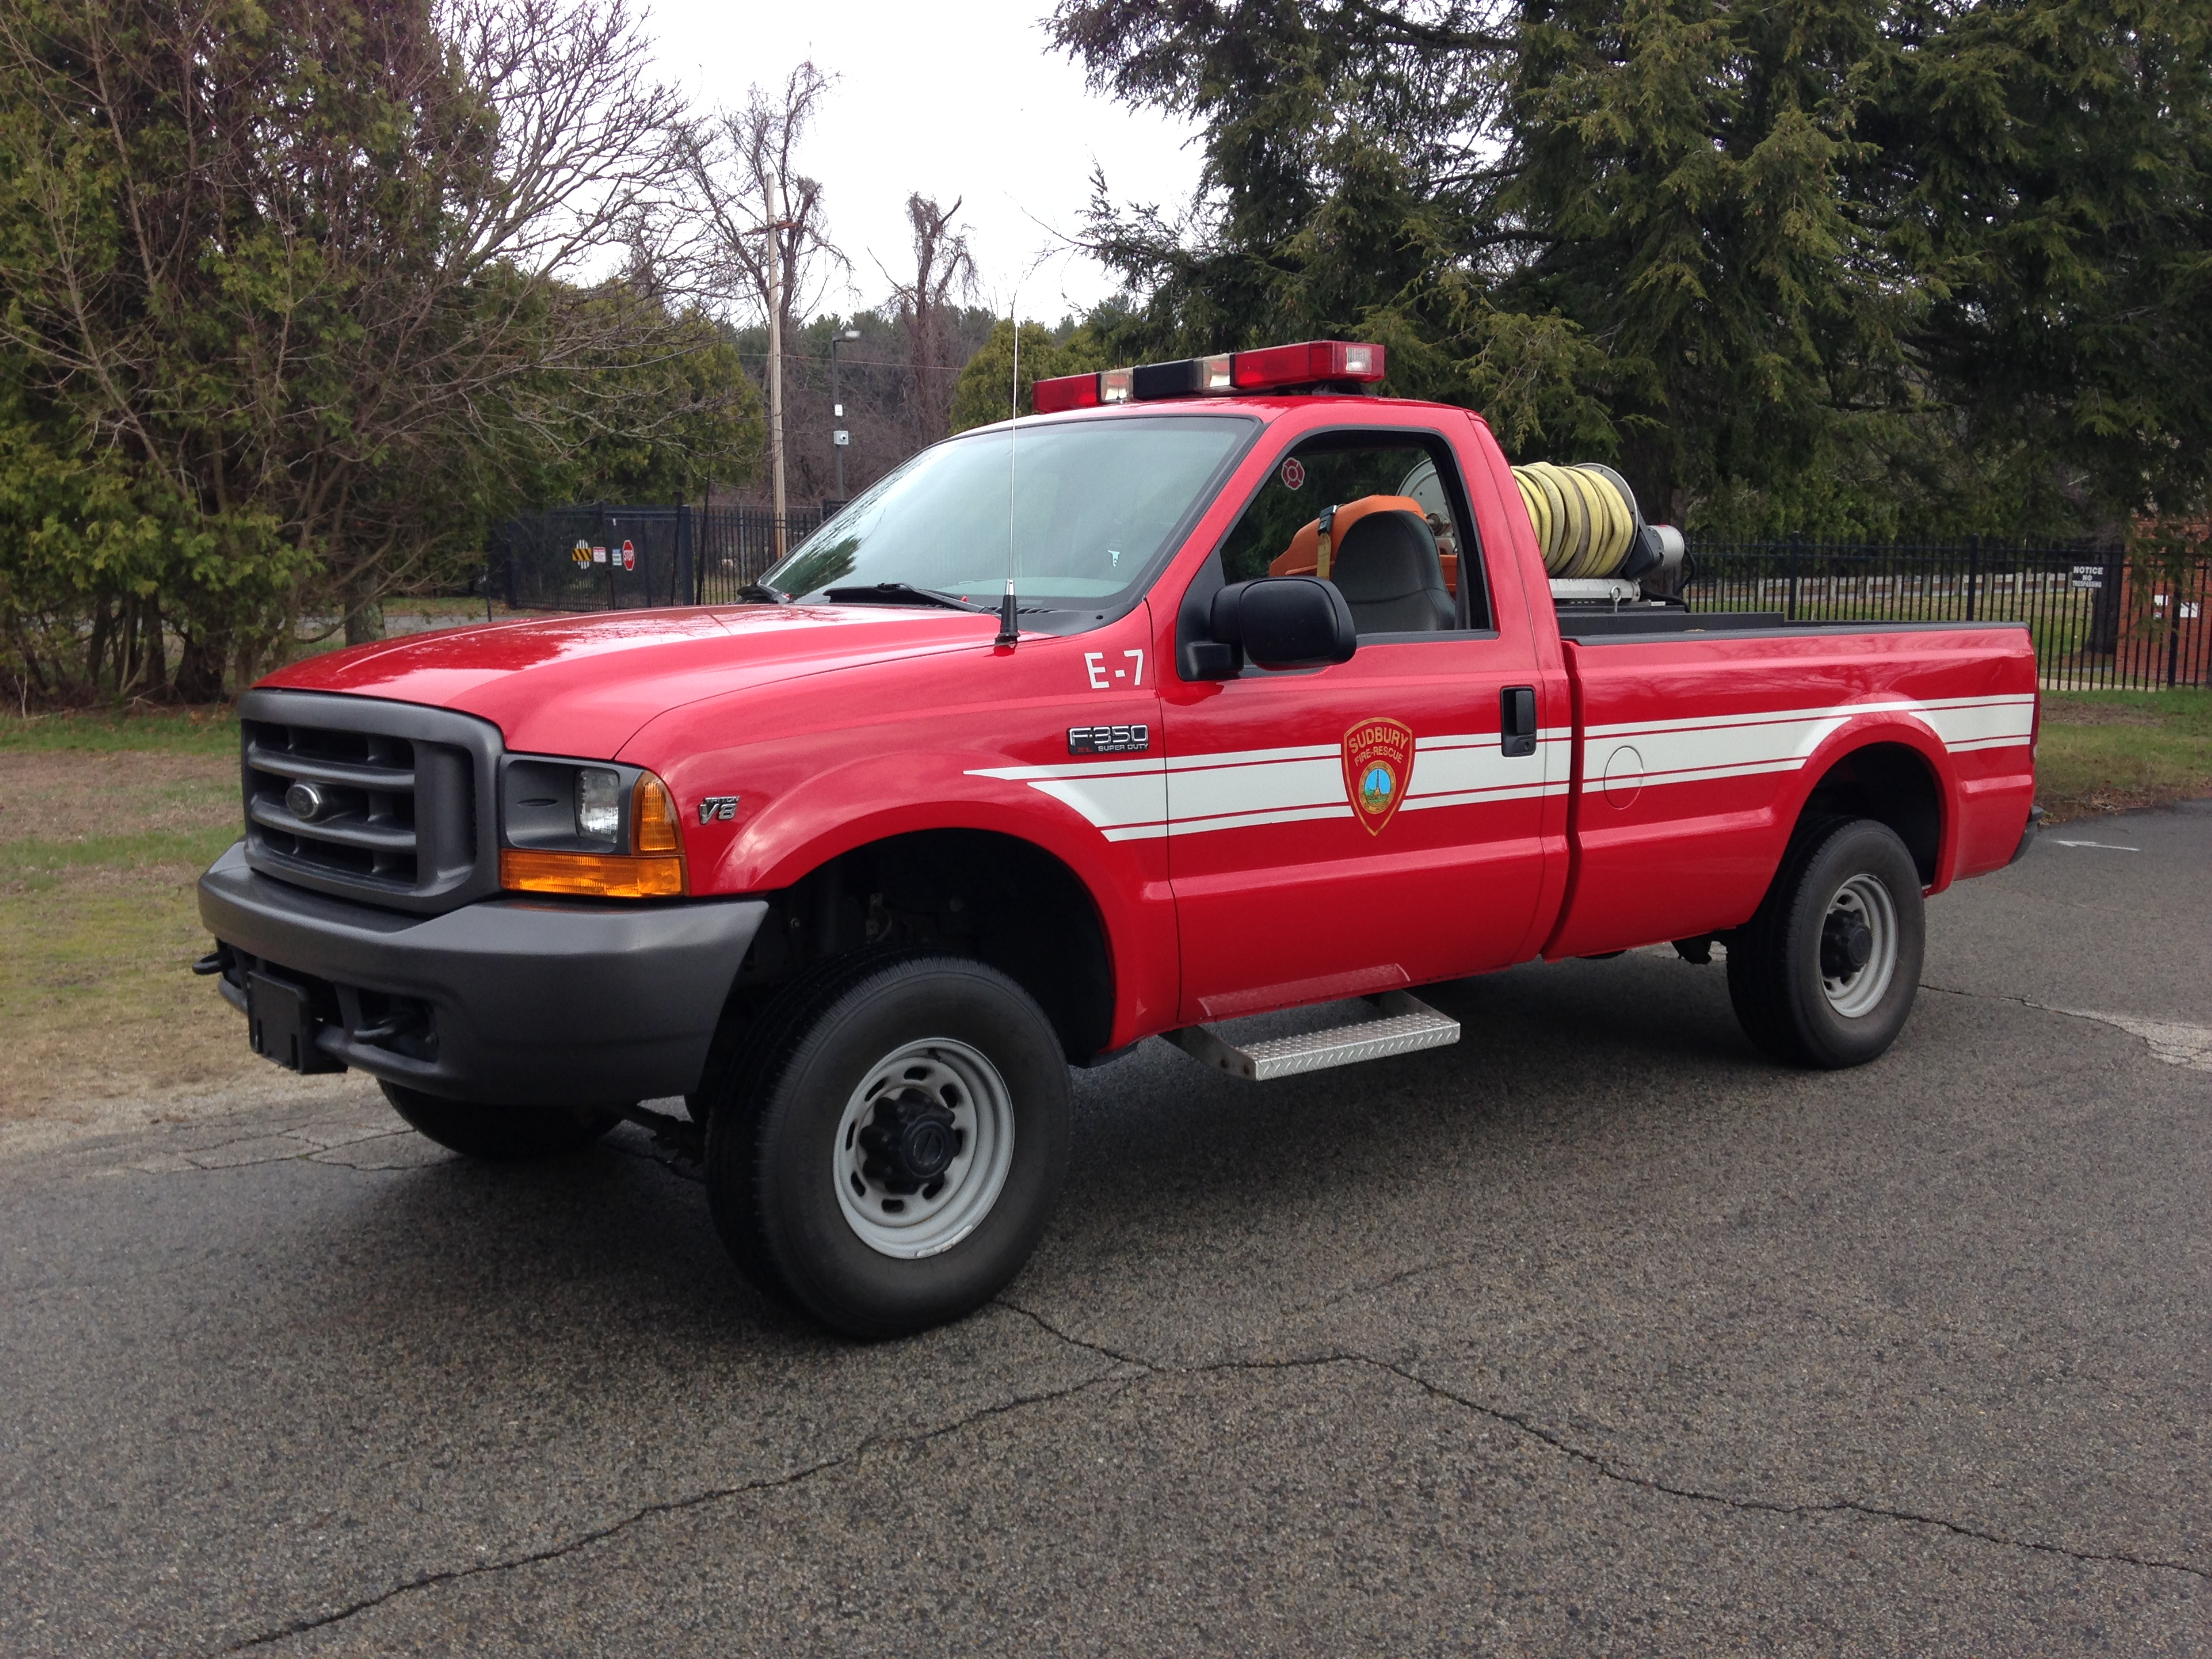 Engine 7 – Brush Truck